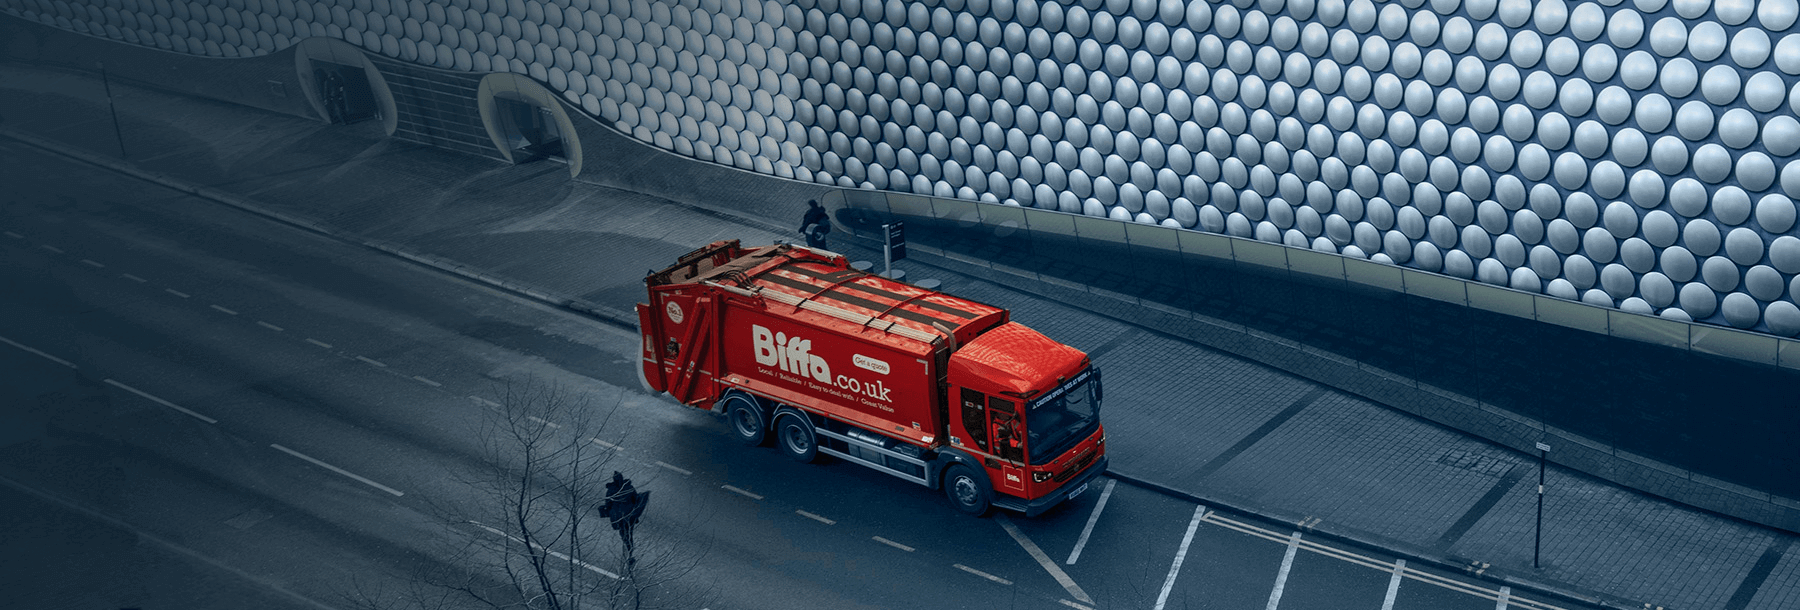 Biffa Bin Lorry by Selfridges Brimingham